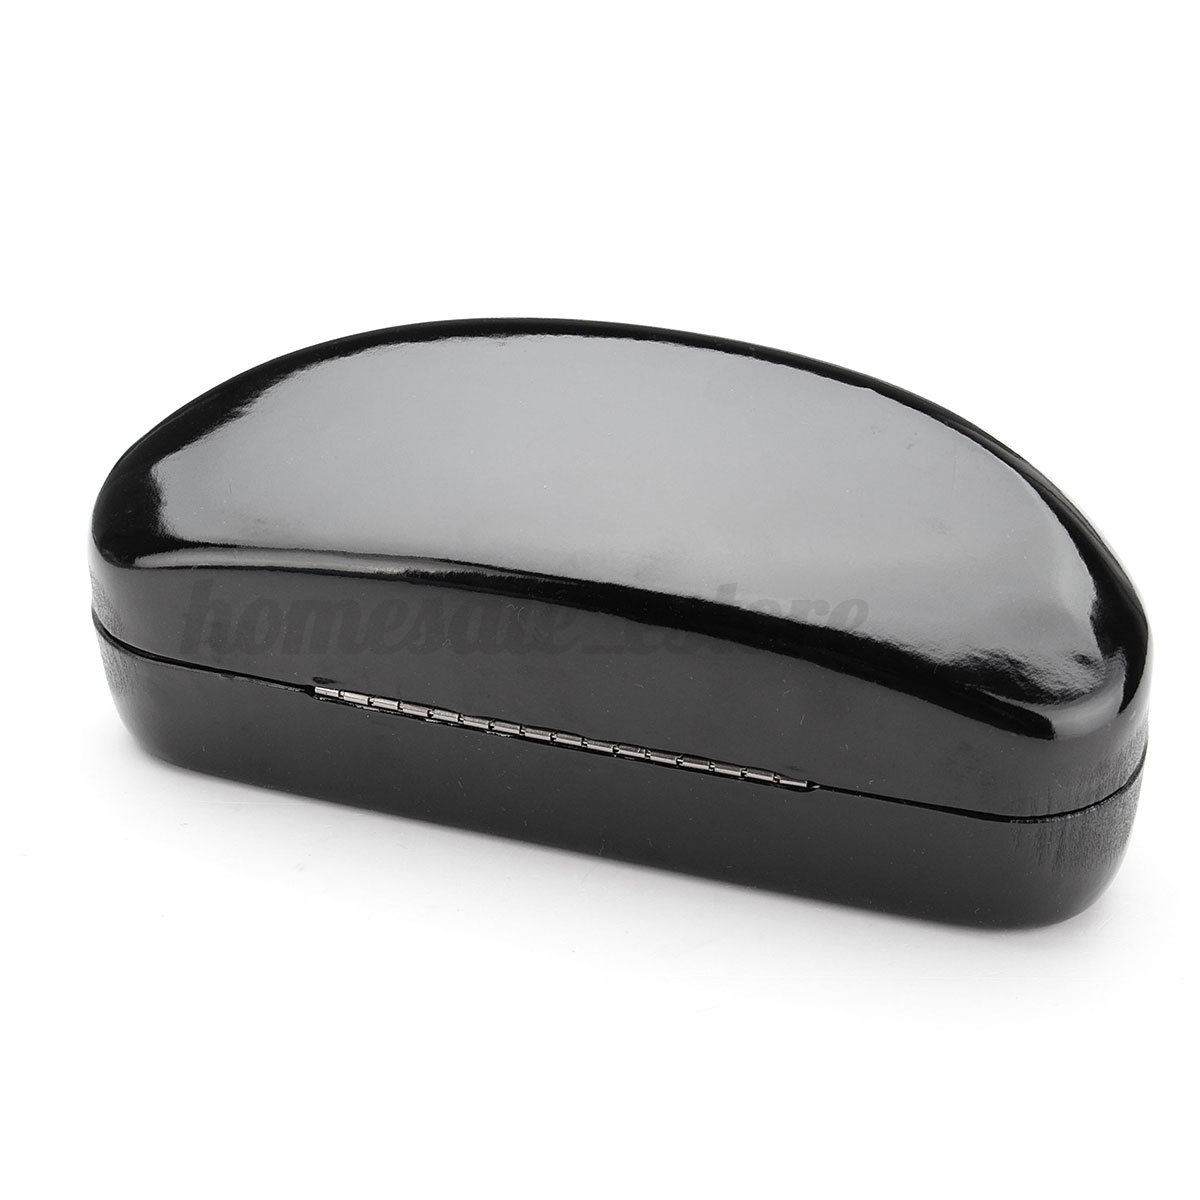 527fc0b982b Sunglasses Hard Case Ebay